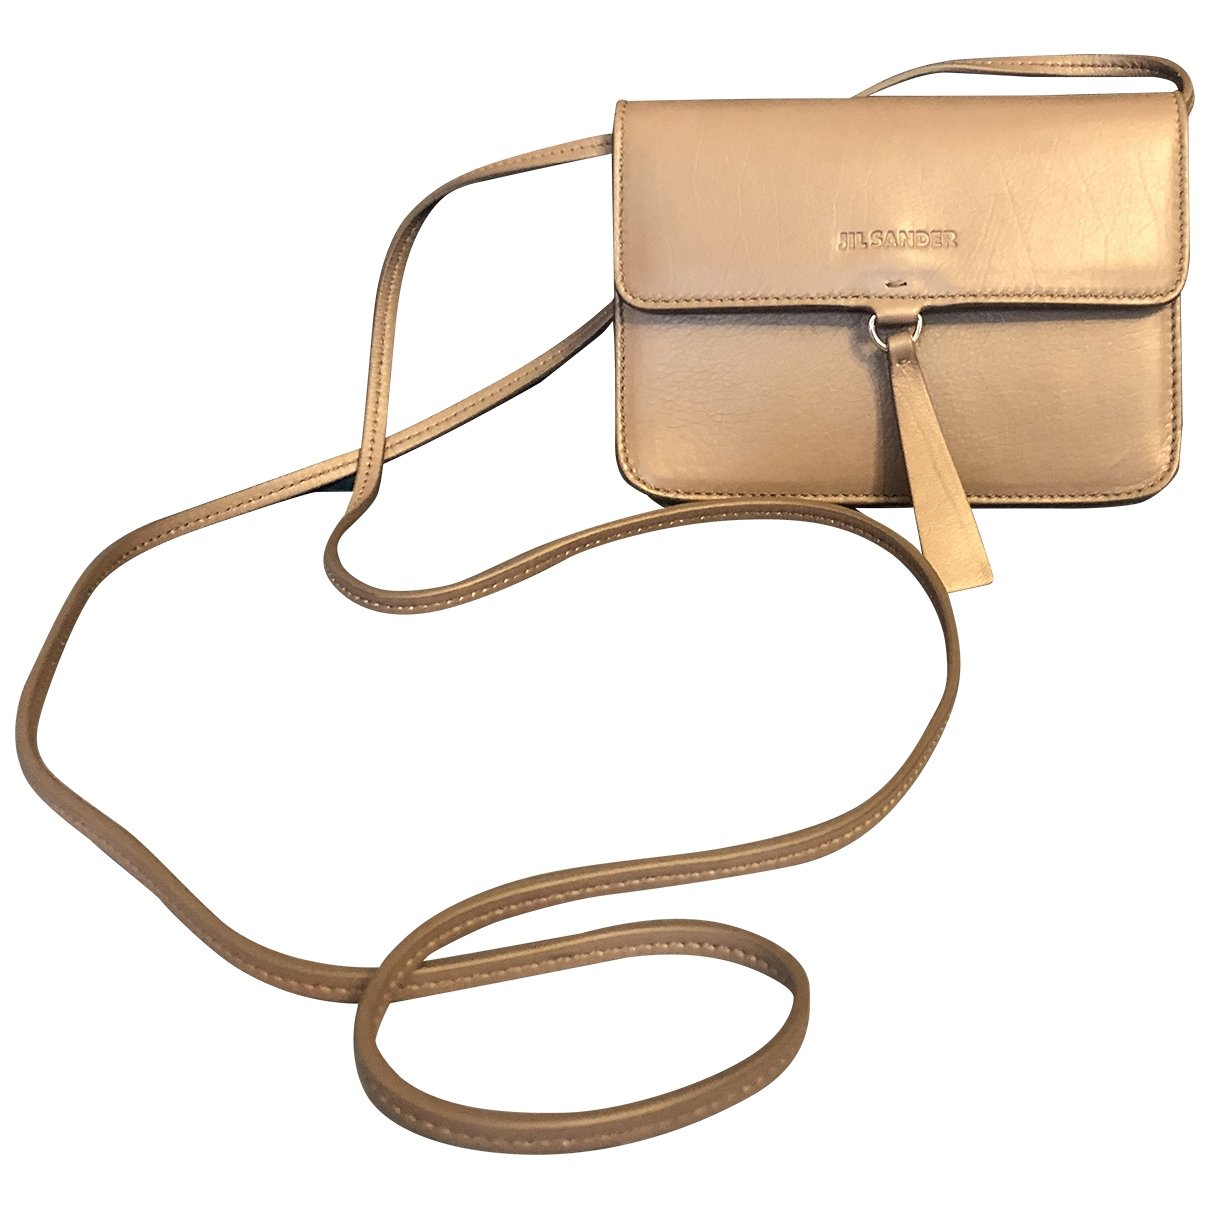 Jil Sander \N Leather Clutch bag for Women \N